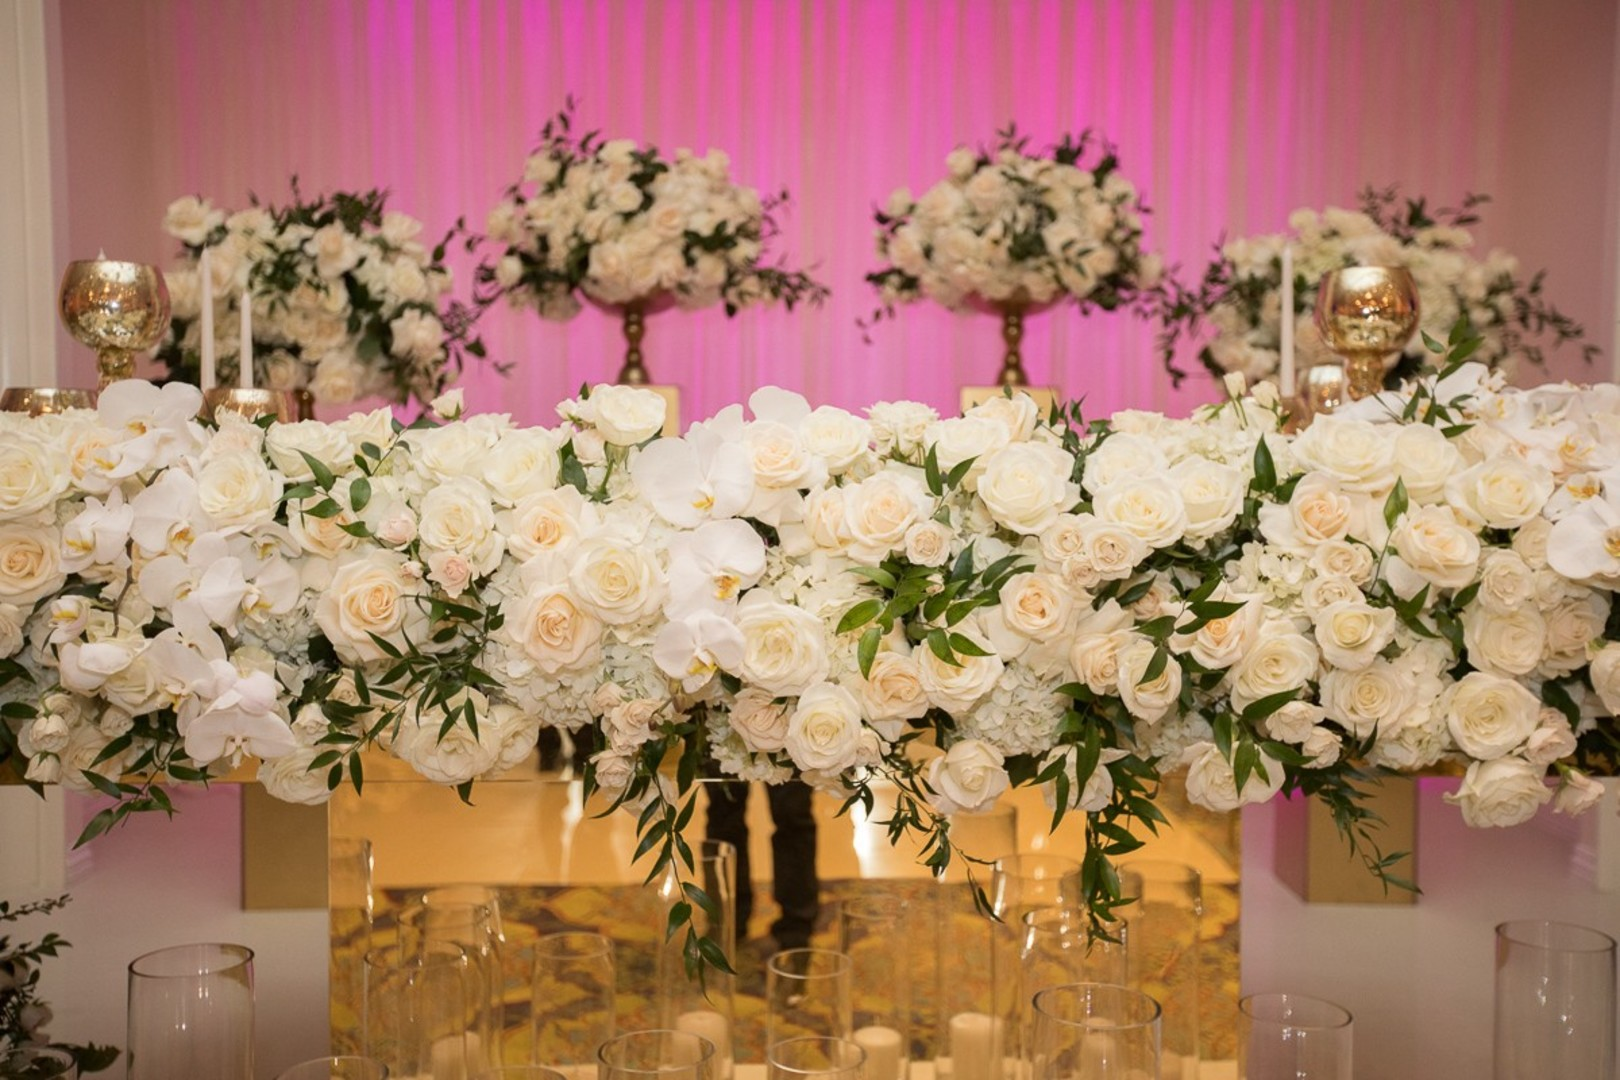 DWTS' Emma Slater and Sasha Farber's Wedding, Bella Blanca Event Center, all white floral arrangements